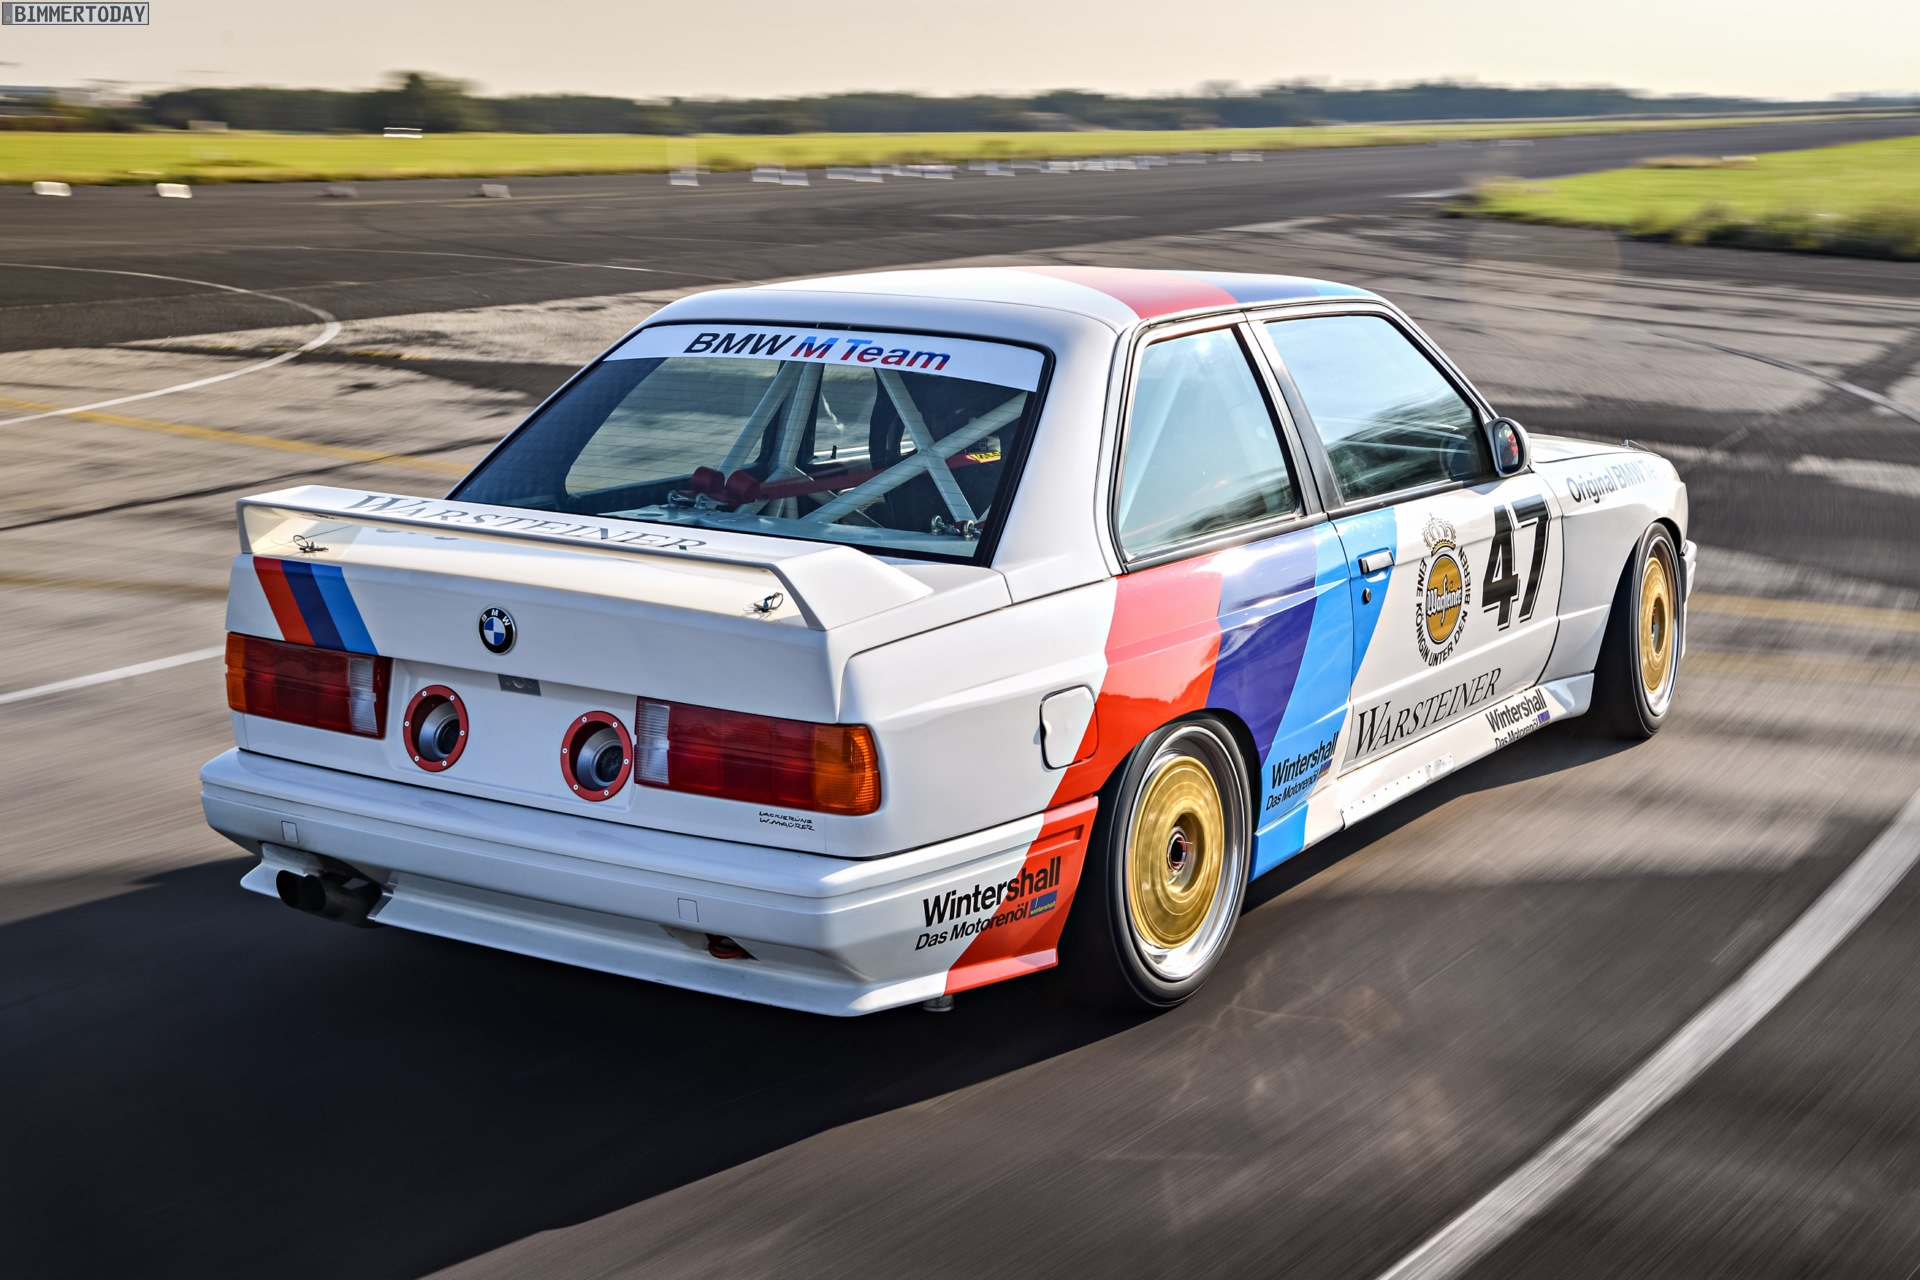 Bmw Dtm Race Car For Sale